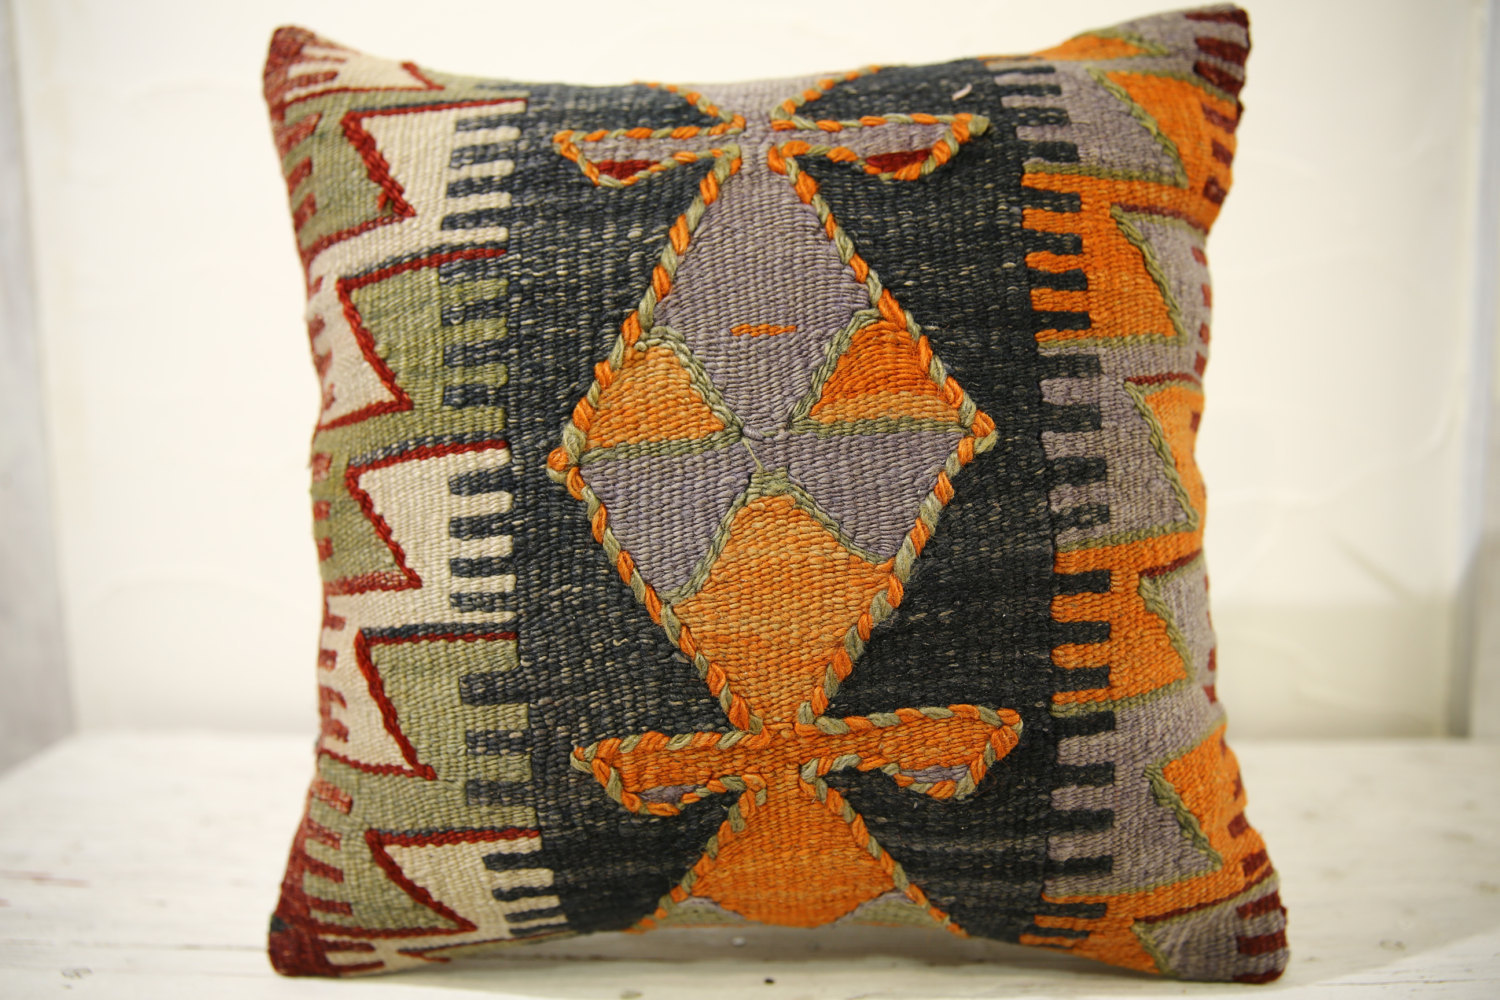 Kilim Pillows |16x16 | Decorative Pillows | 516 | Accent Pillows turkish pillow